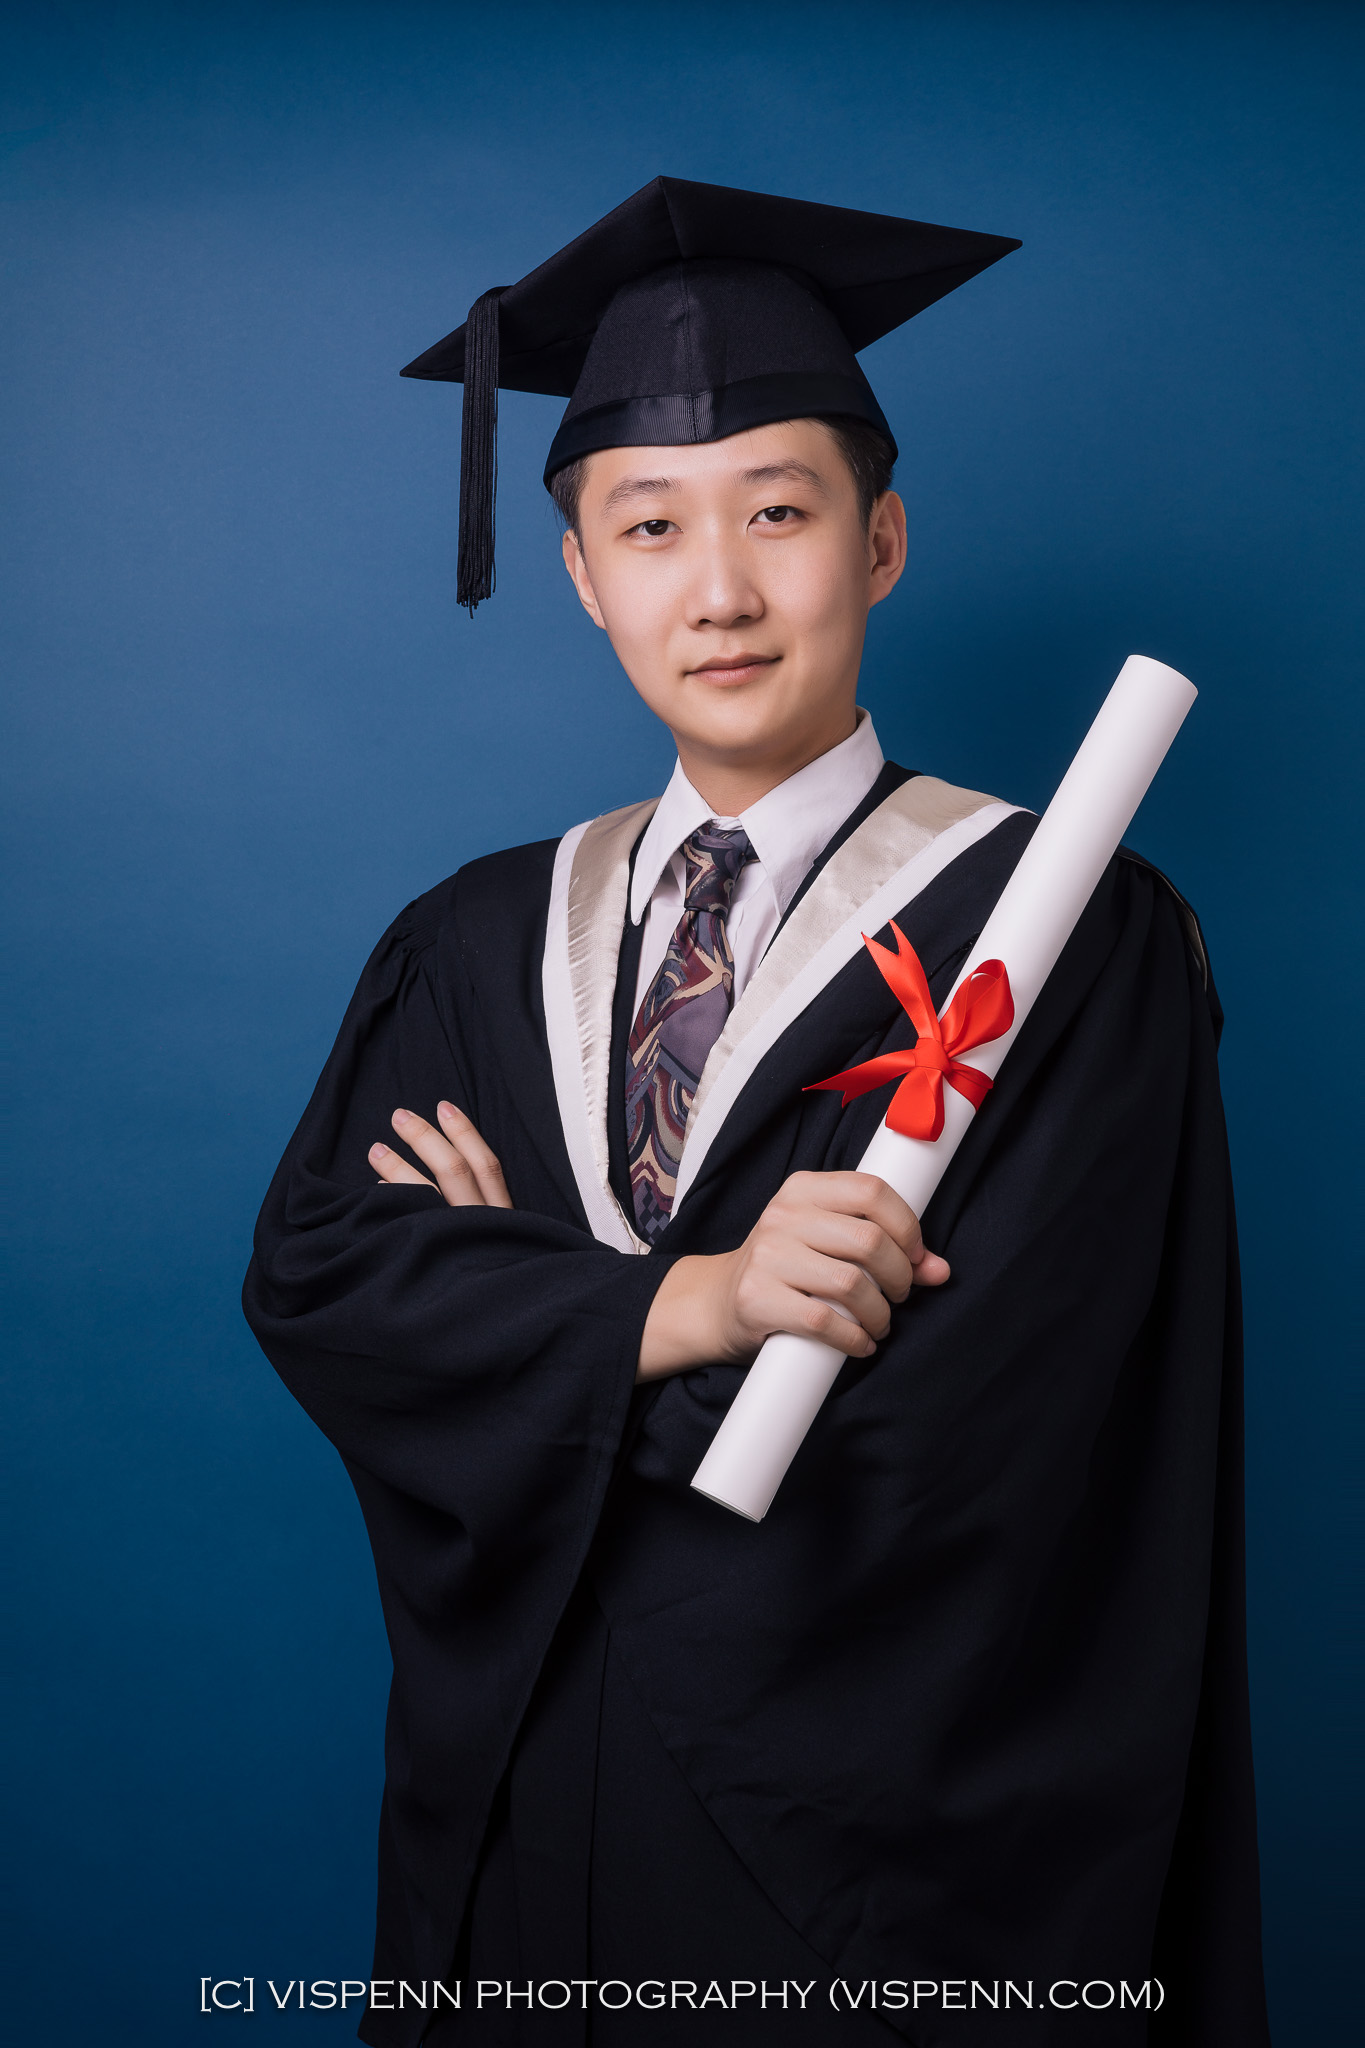 Headshot Melbourne Graduation Photoshoot VISPENN 墨尔本 毕业照 毕业摄影 5D5 3712 Edit